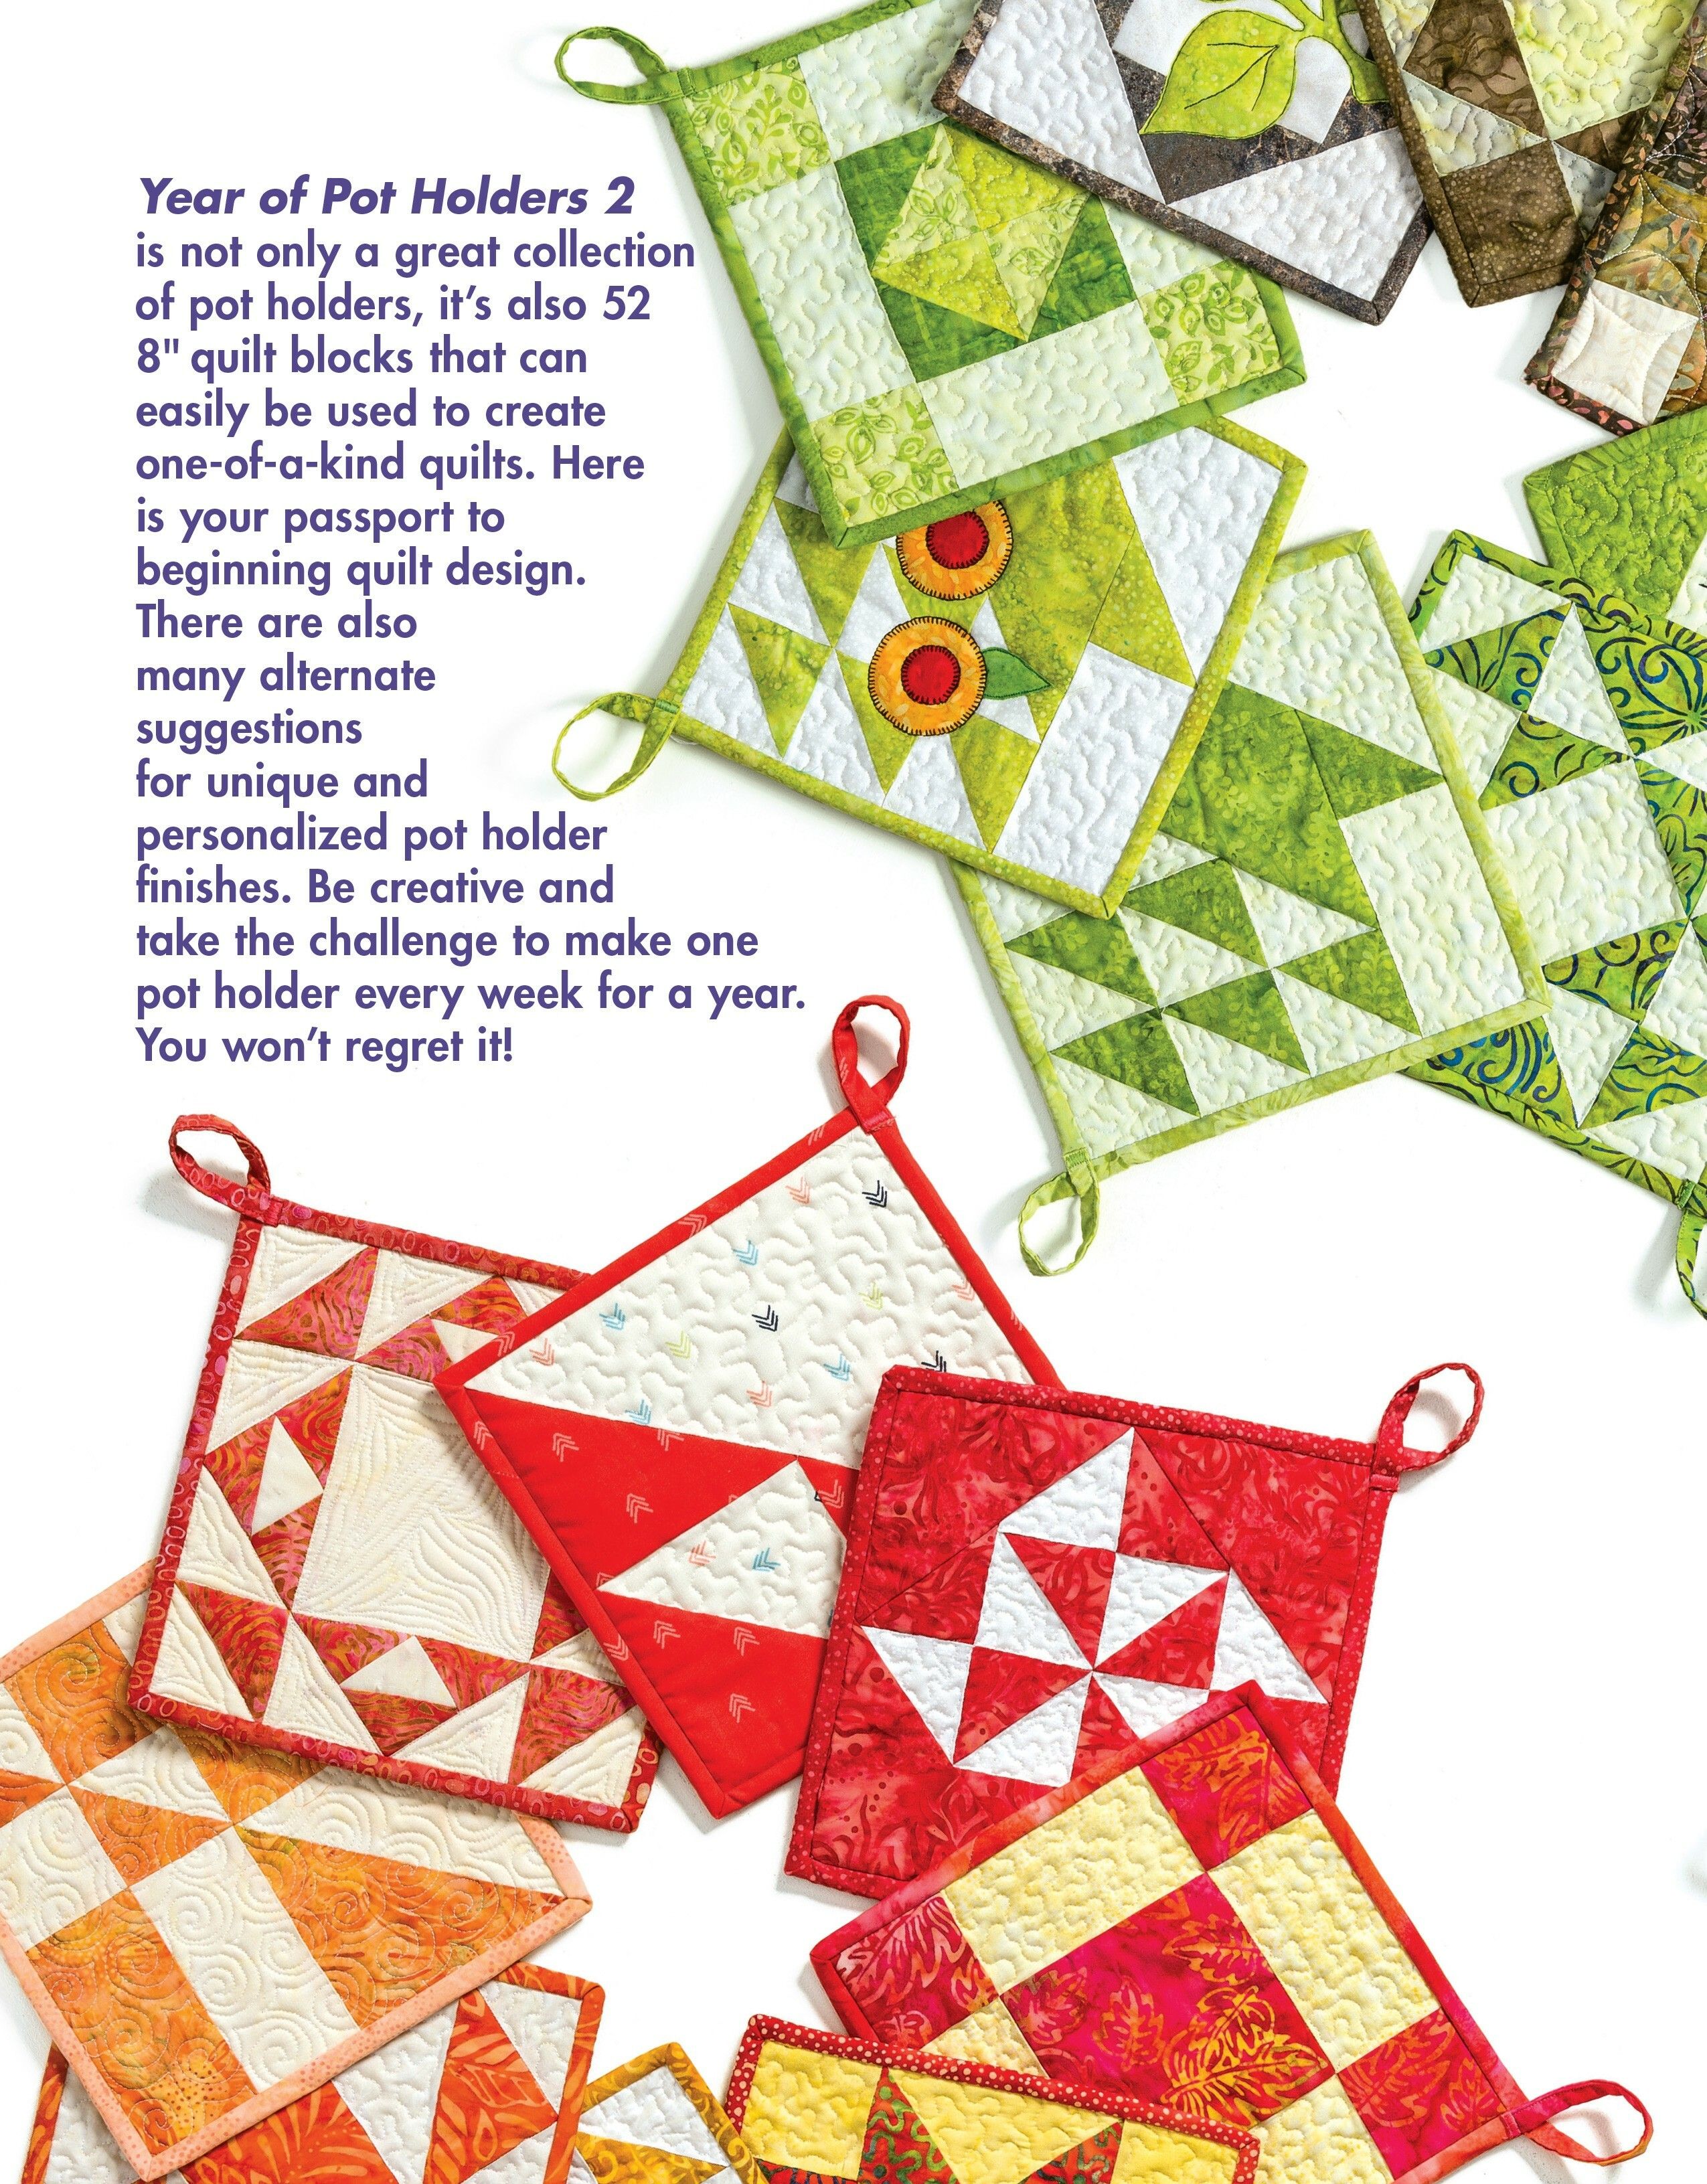 Year of Pot Holders 2 Book